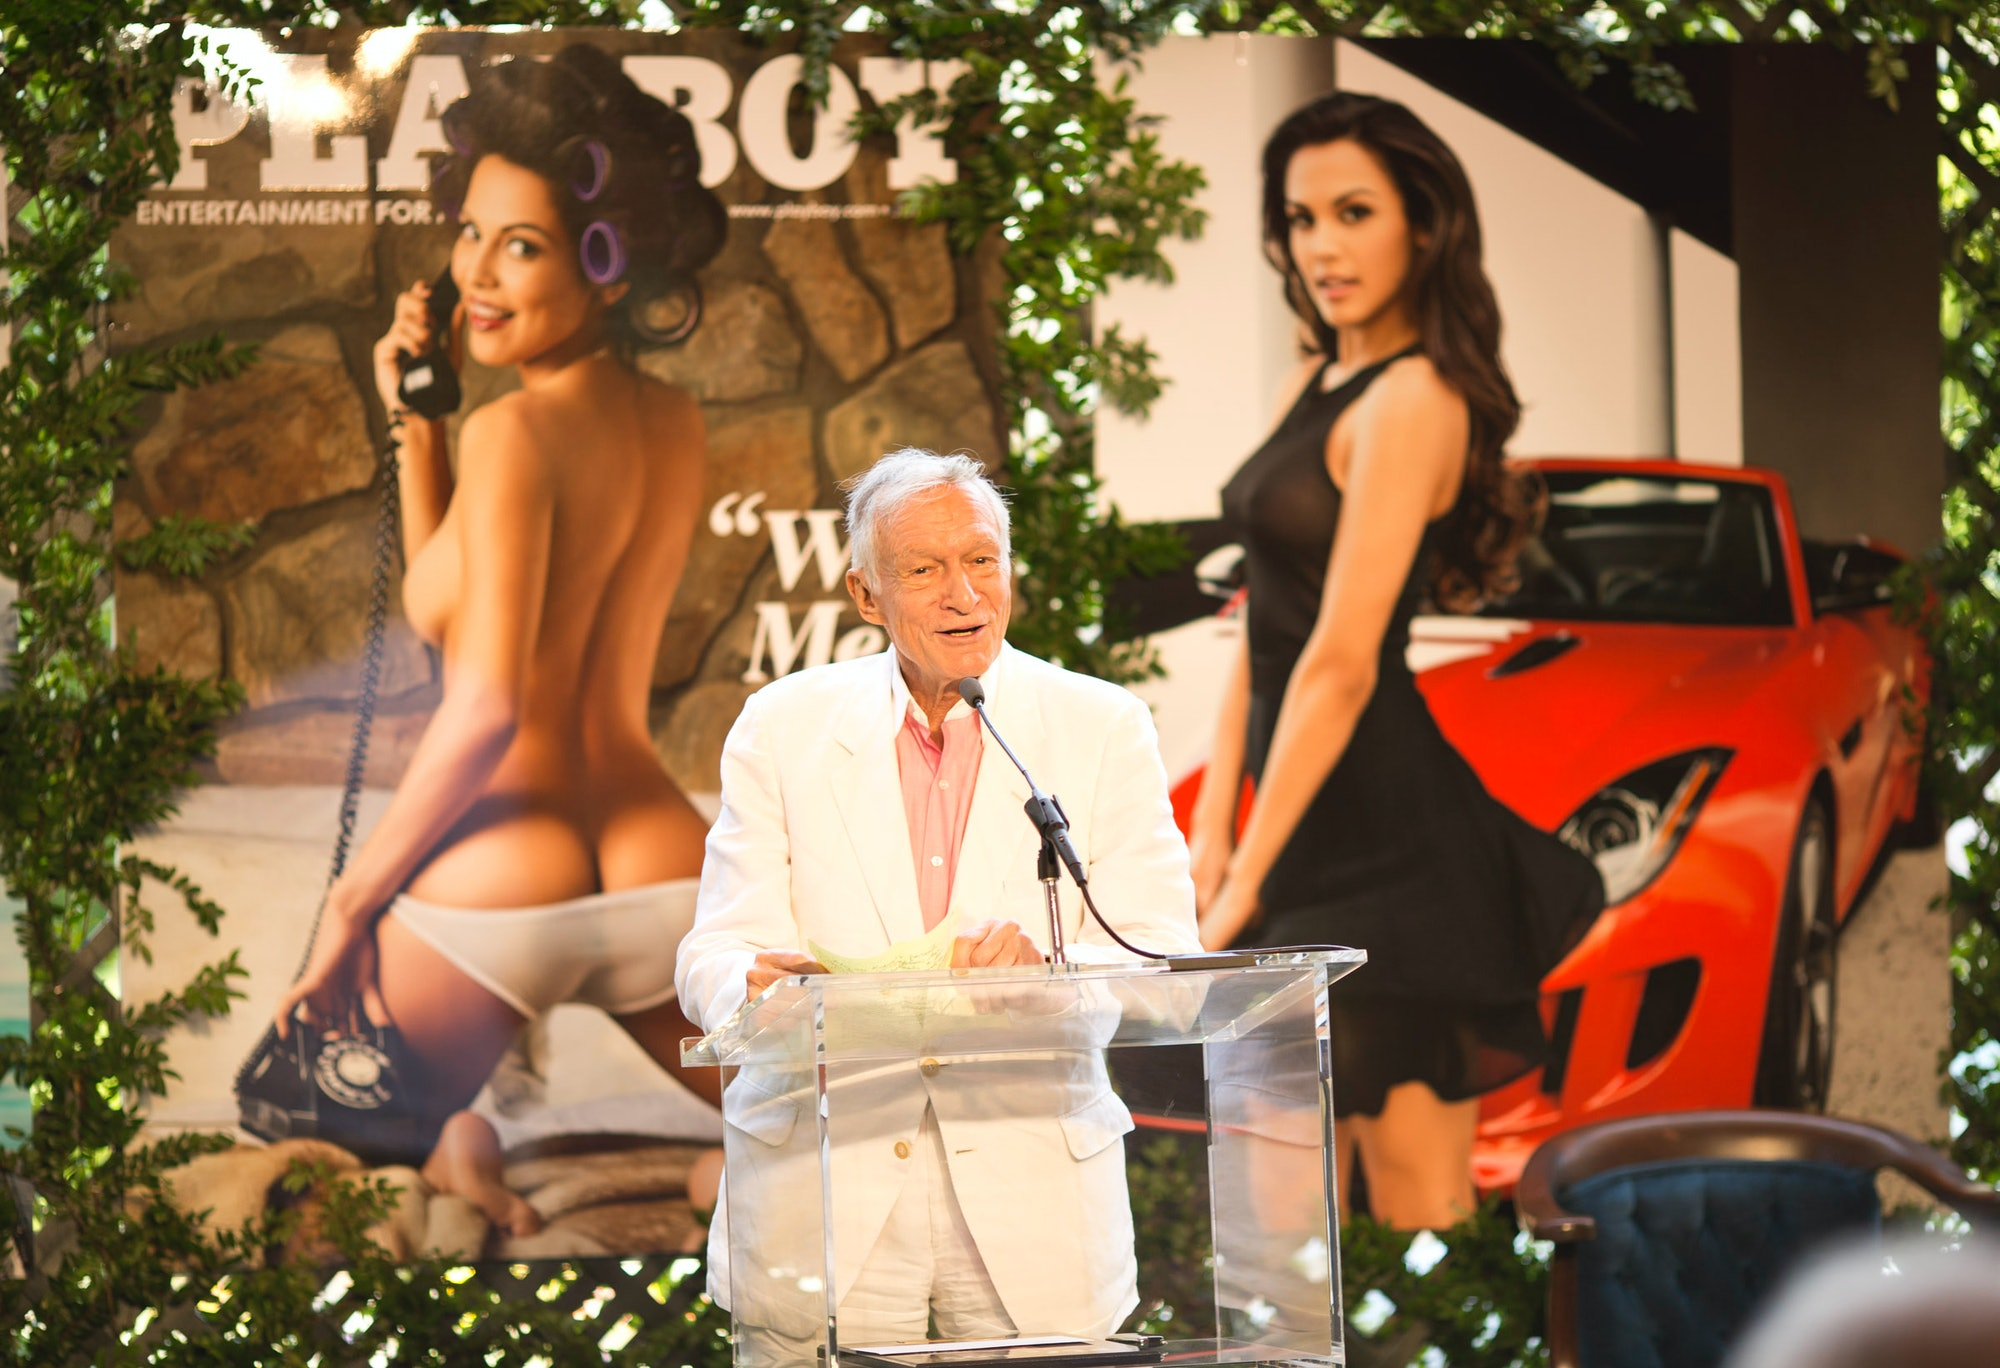 HOLMBY HILLS, CA - MAY 09: Hugh Hefner speaks onstage during Playboy's 2013 Playmate Of The Year luncheon honoring Raquel Pomplun at The Playboy Mansion on May 9, 2013 in Holmby Hills, California. (Photo by Christopher Polk/Getty Images for Playboy)